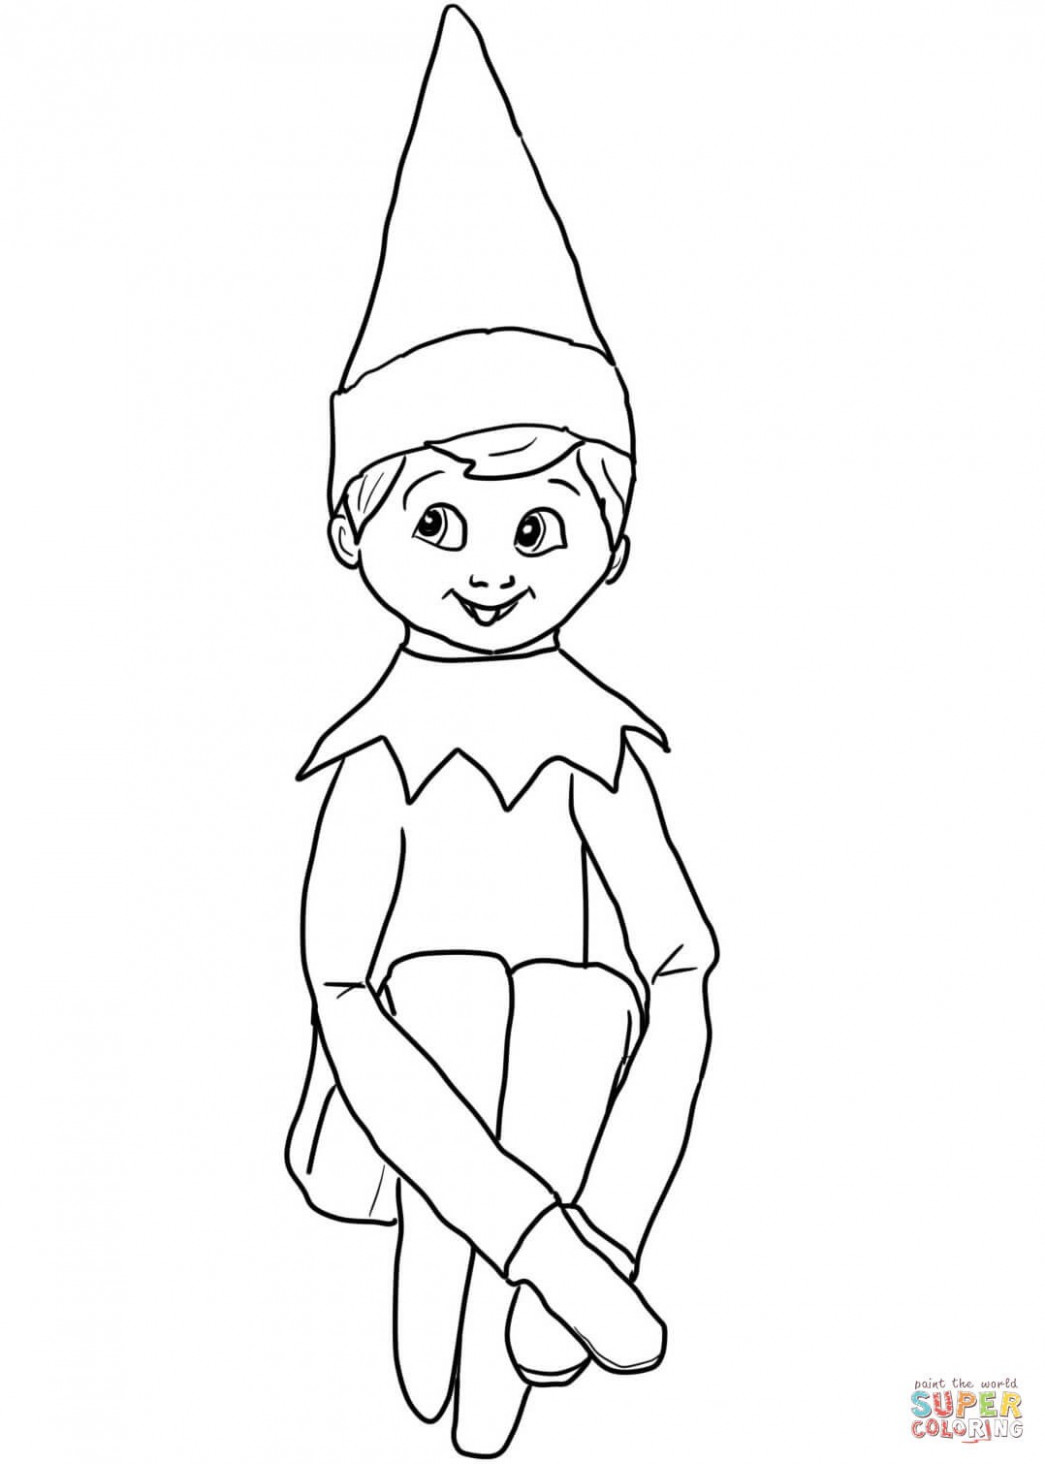 Christmas Elf Coloring Pages Printable | lrcp